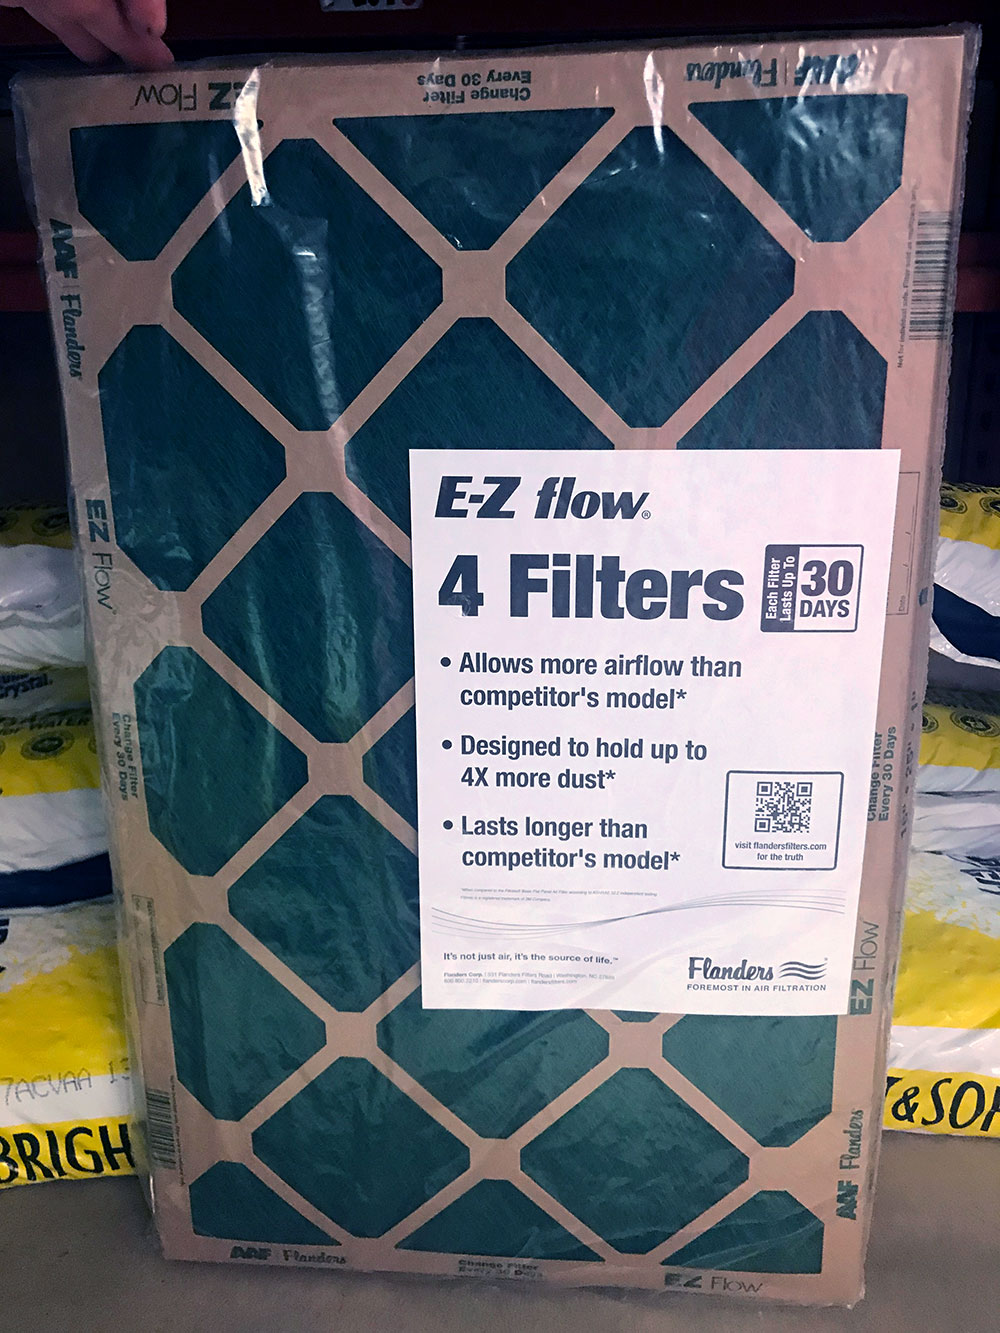 Cheap Air Filters >> Finding The Inexpensive Air Filters At Home Depot Altitude Comfort